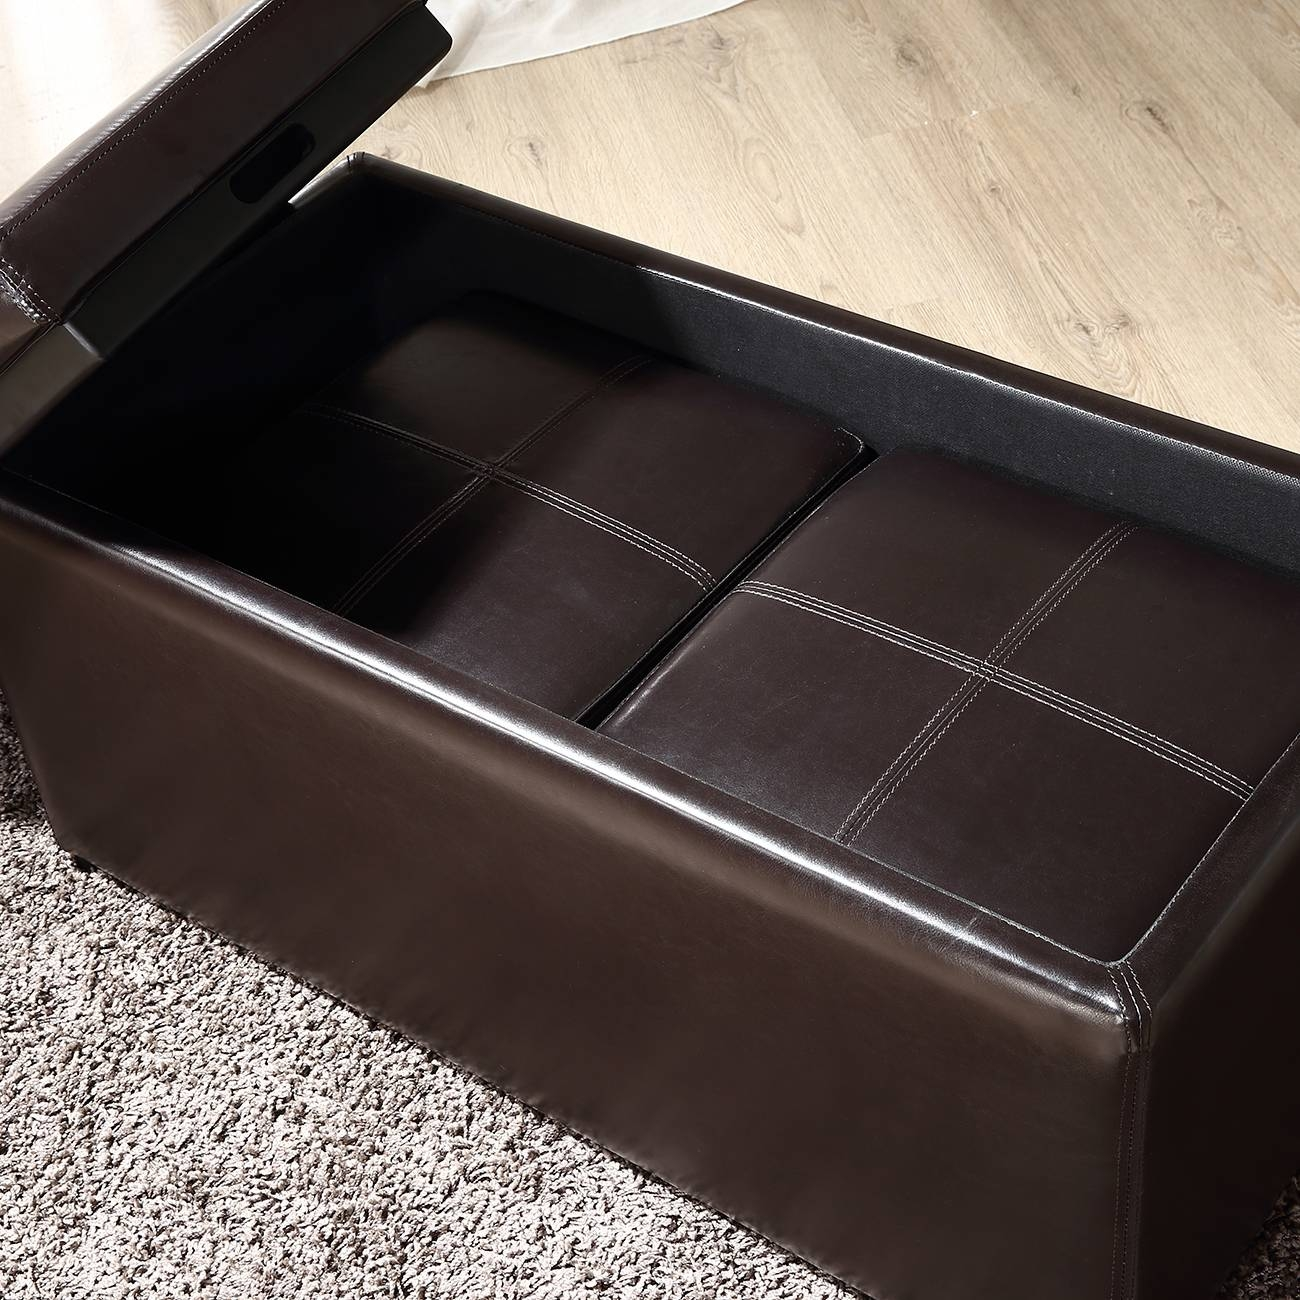 3Pc Ottoman Bench Storage Lid Tray Footrest Coffee Table Black throughout Coffee Table Footrests (Image 7 of 30)